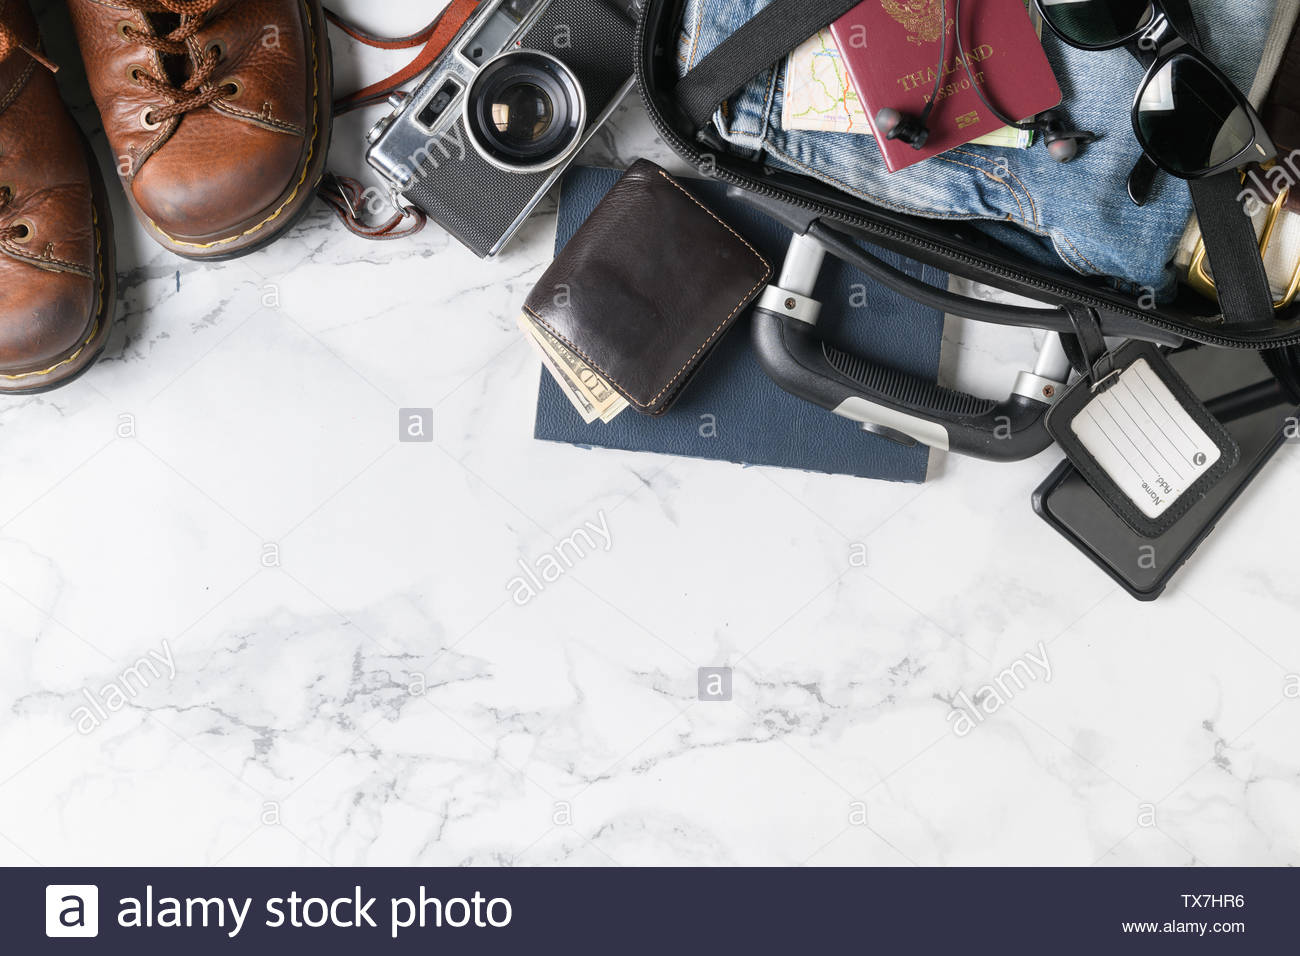 prepare suitcase accessories and travel items background on marble 1300x956